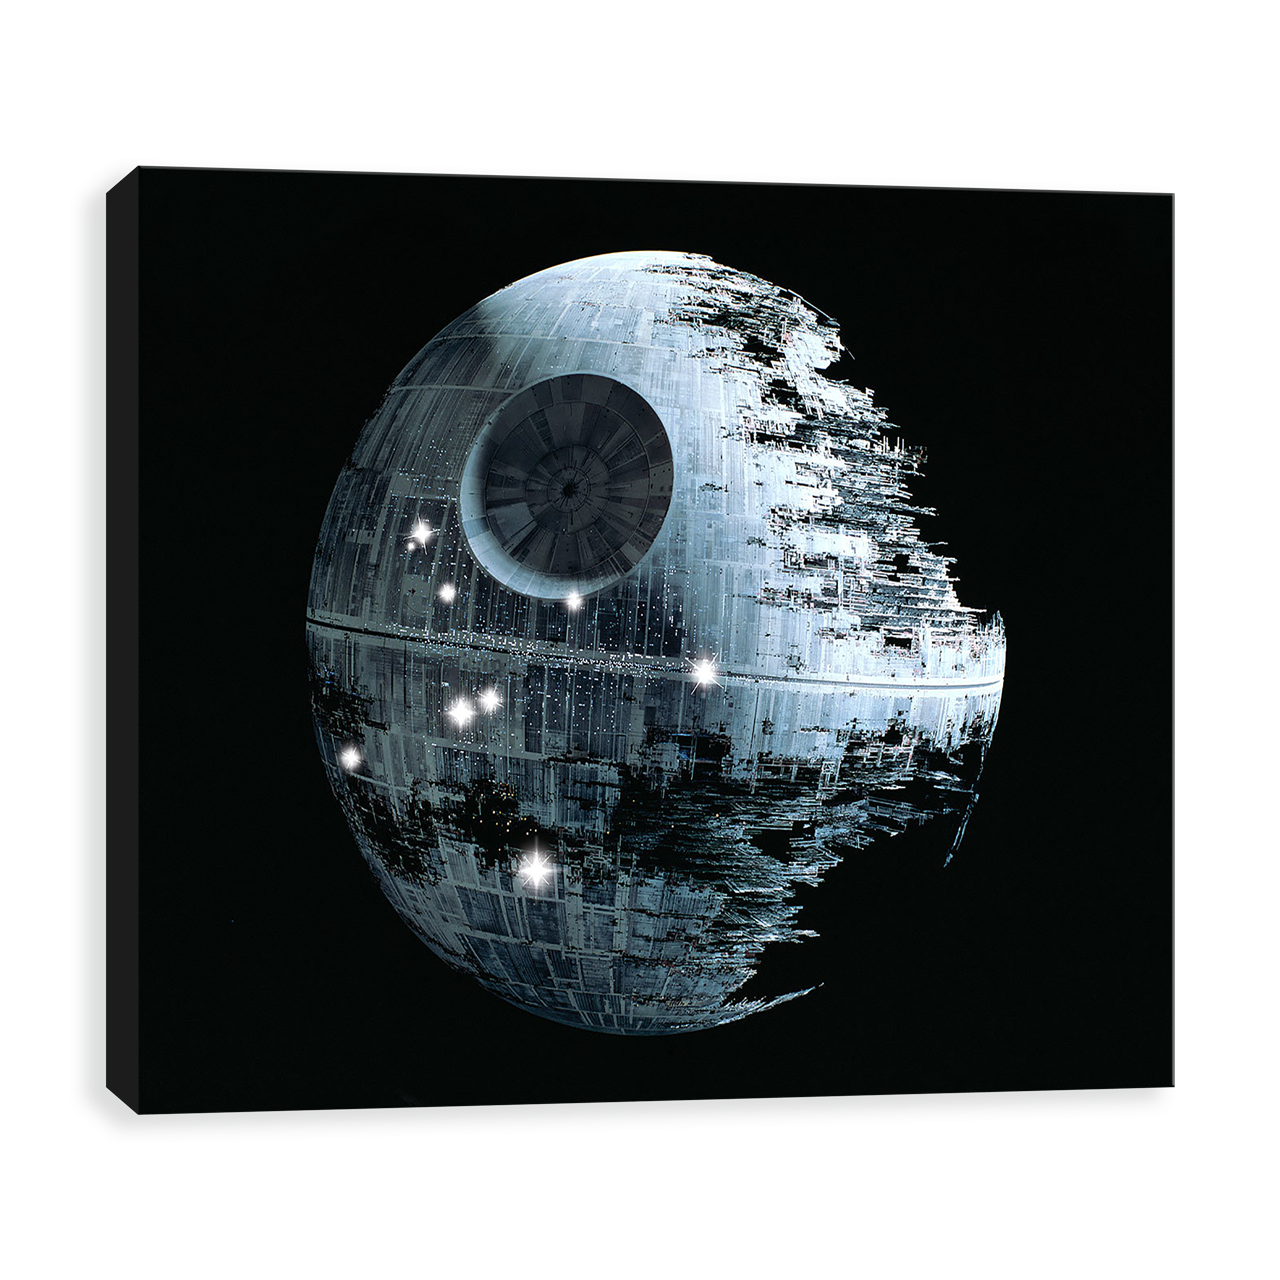 2nd death star png. The second horizontal entertainart